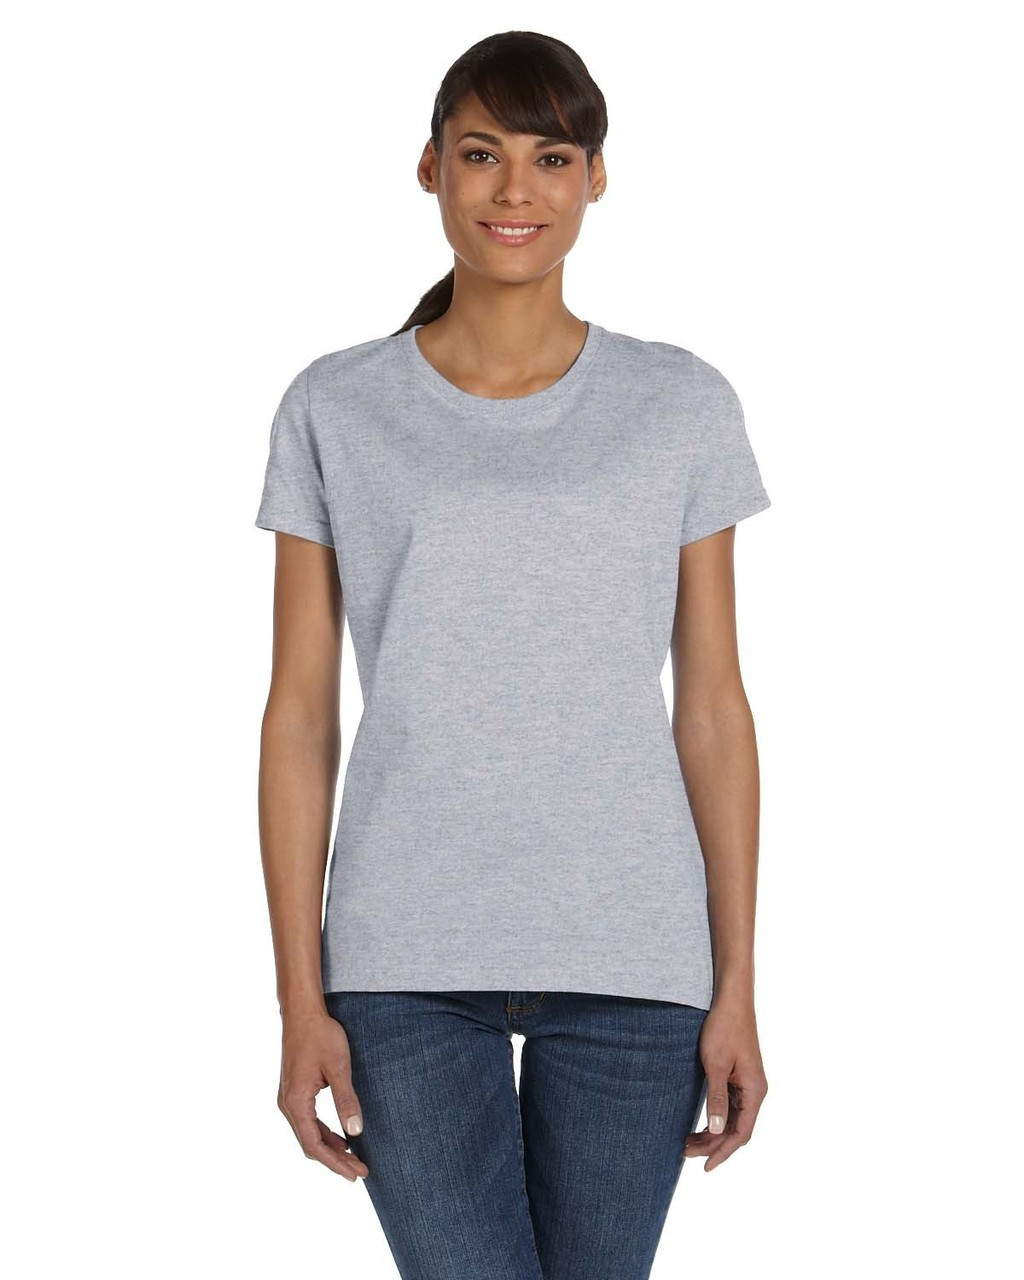 Athletic Heather - L3930R Fruit of the Loom Ladies' 100% Heavy Cotton HD® T-Shirt | Blankclothing.ca